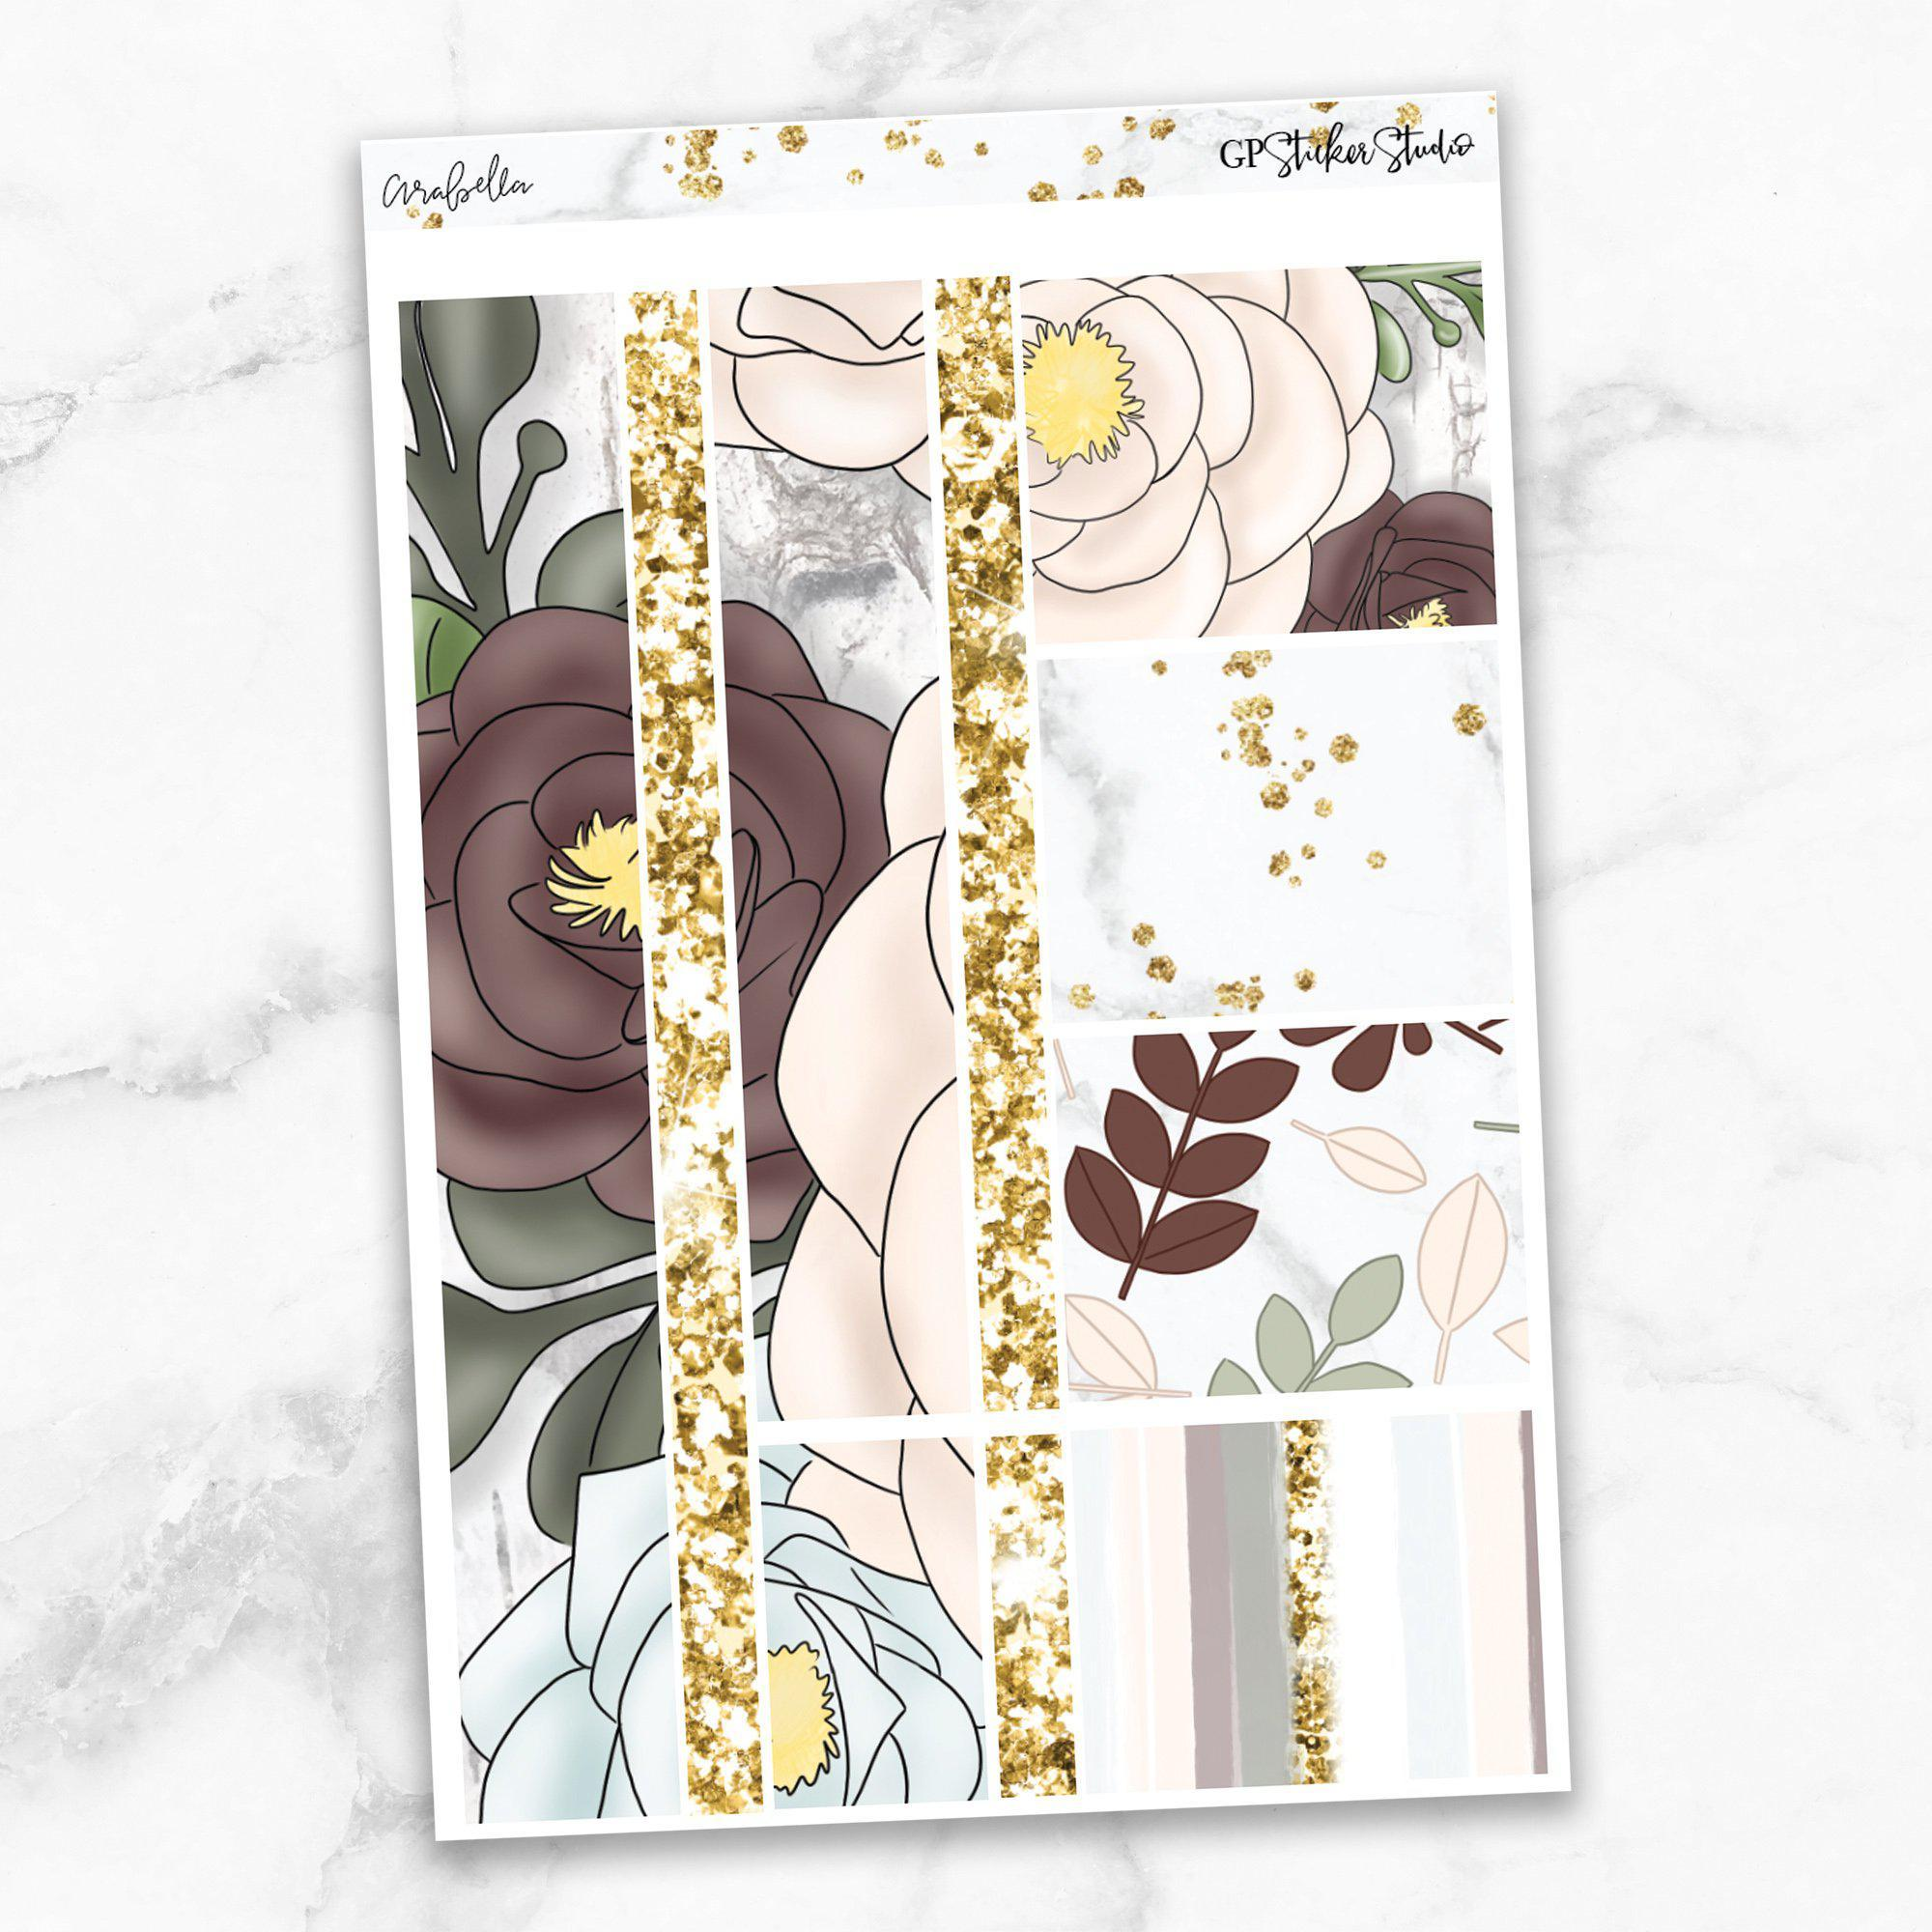 ARABELLA Washi Sheet Stickers-The GP Studio